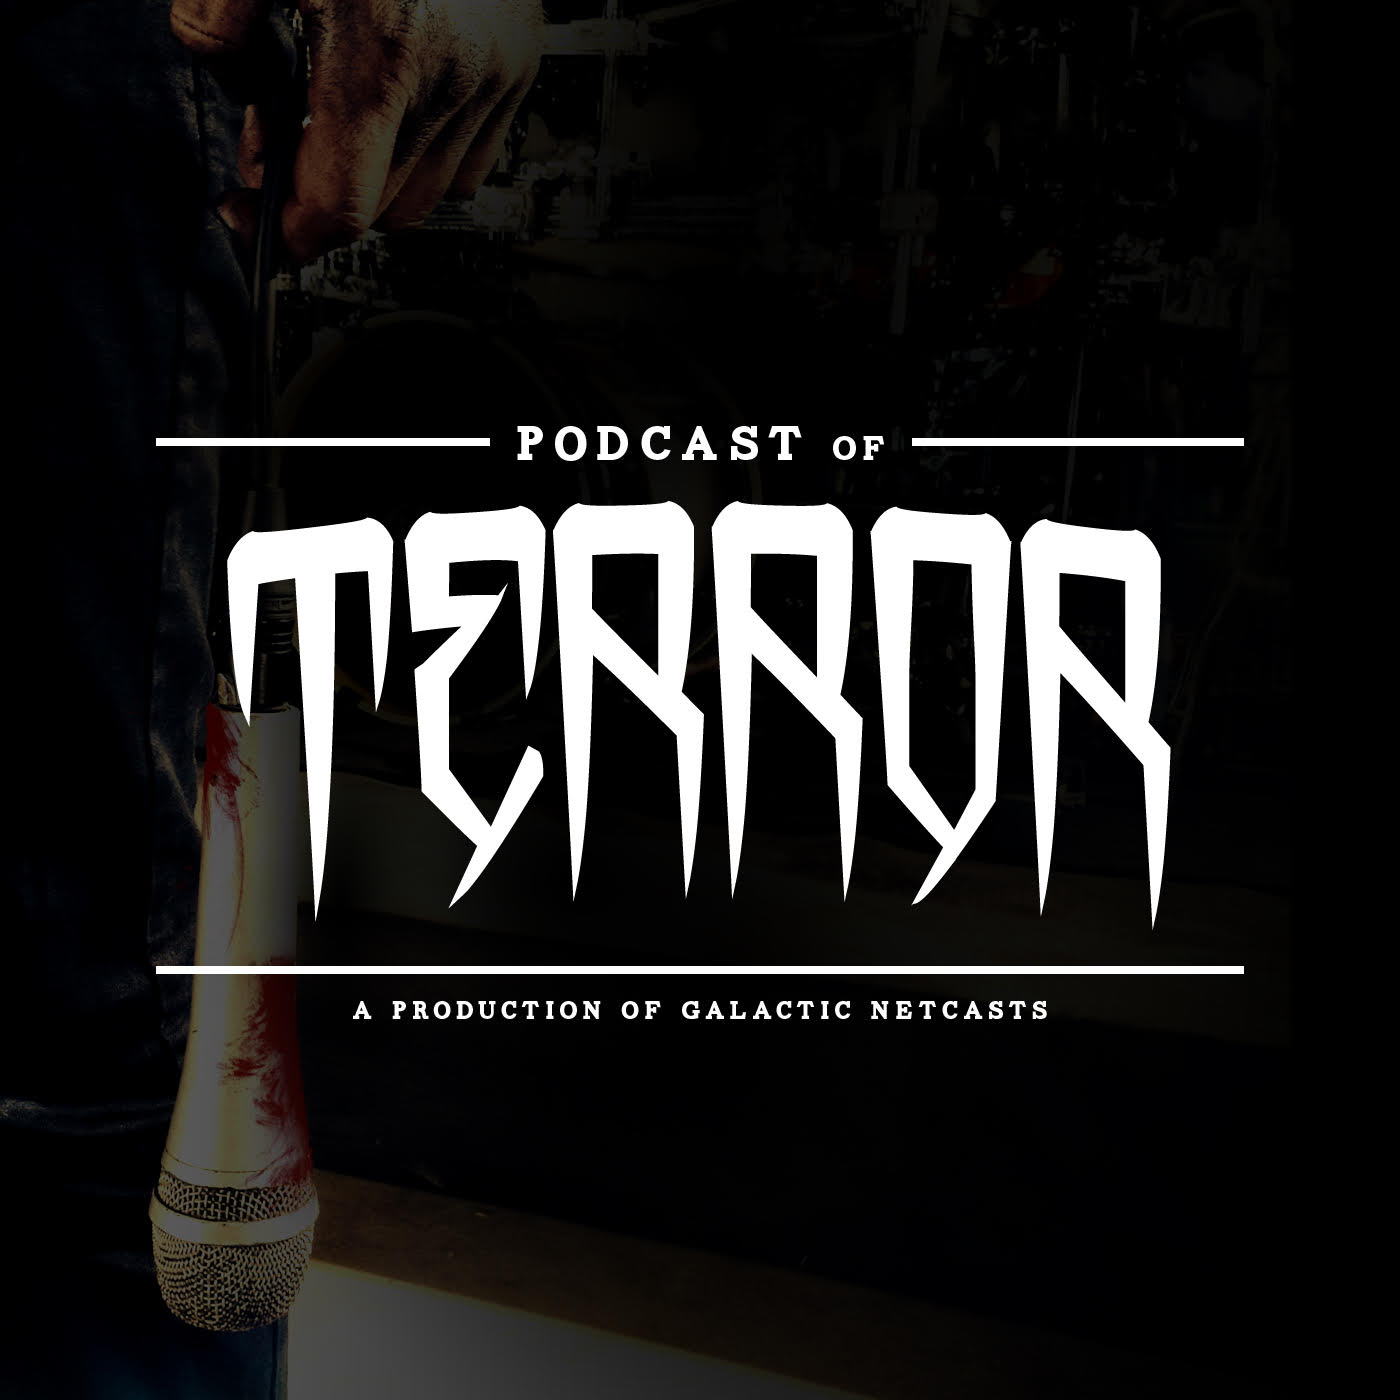 Podcast of Terror